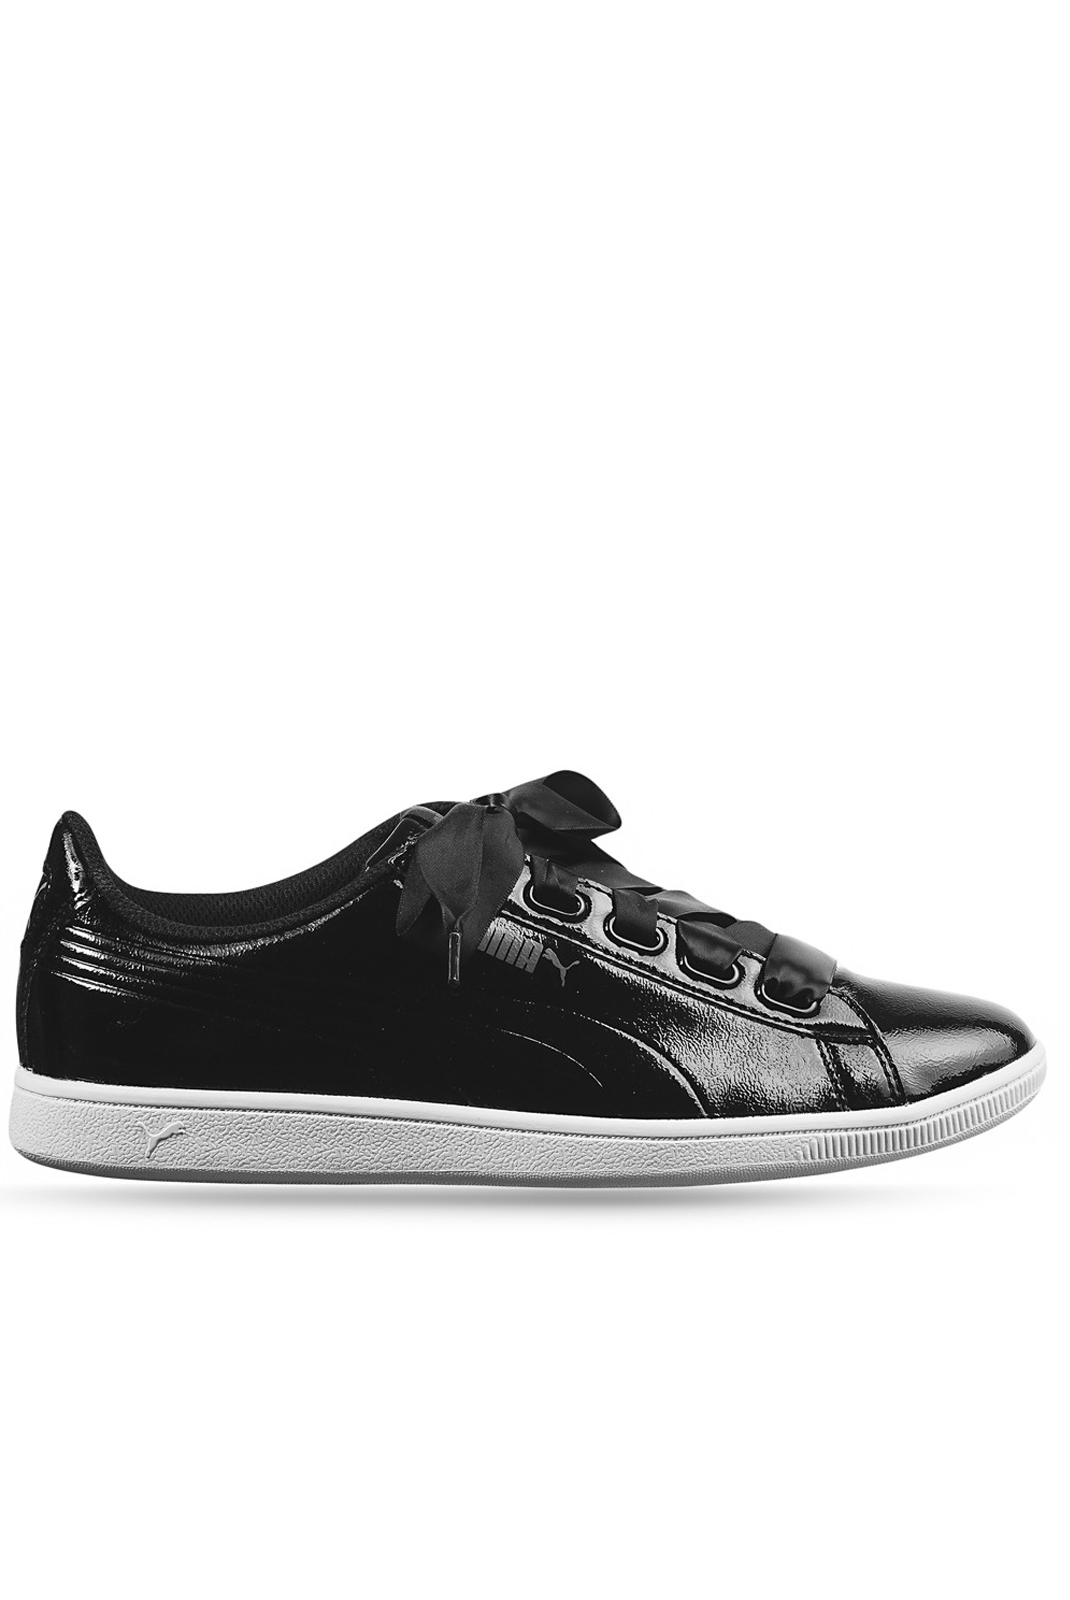 Baskets / Sneakers  Puma 366417 01 NOIR